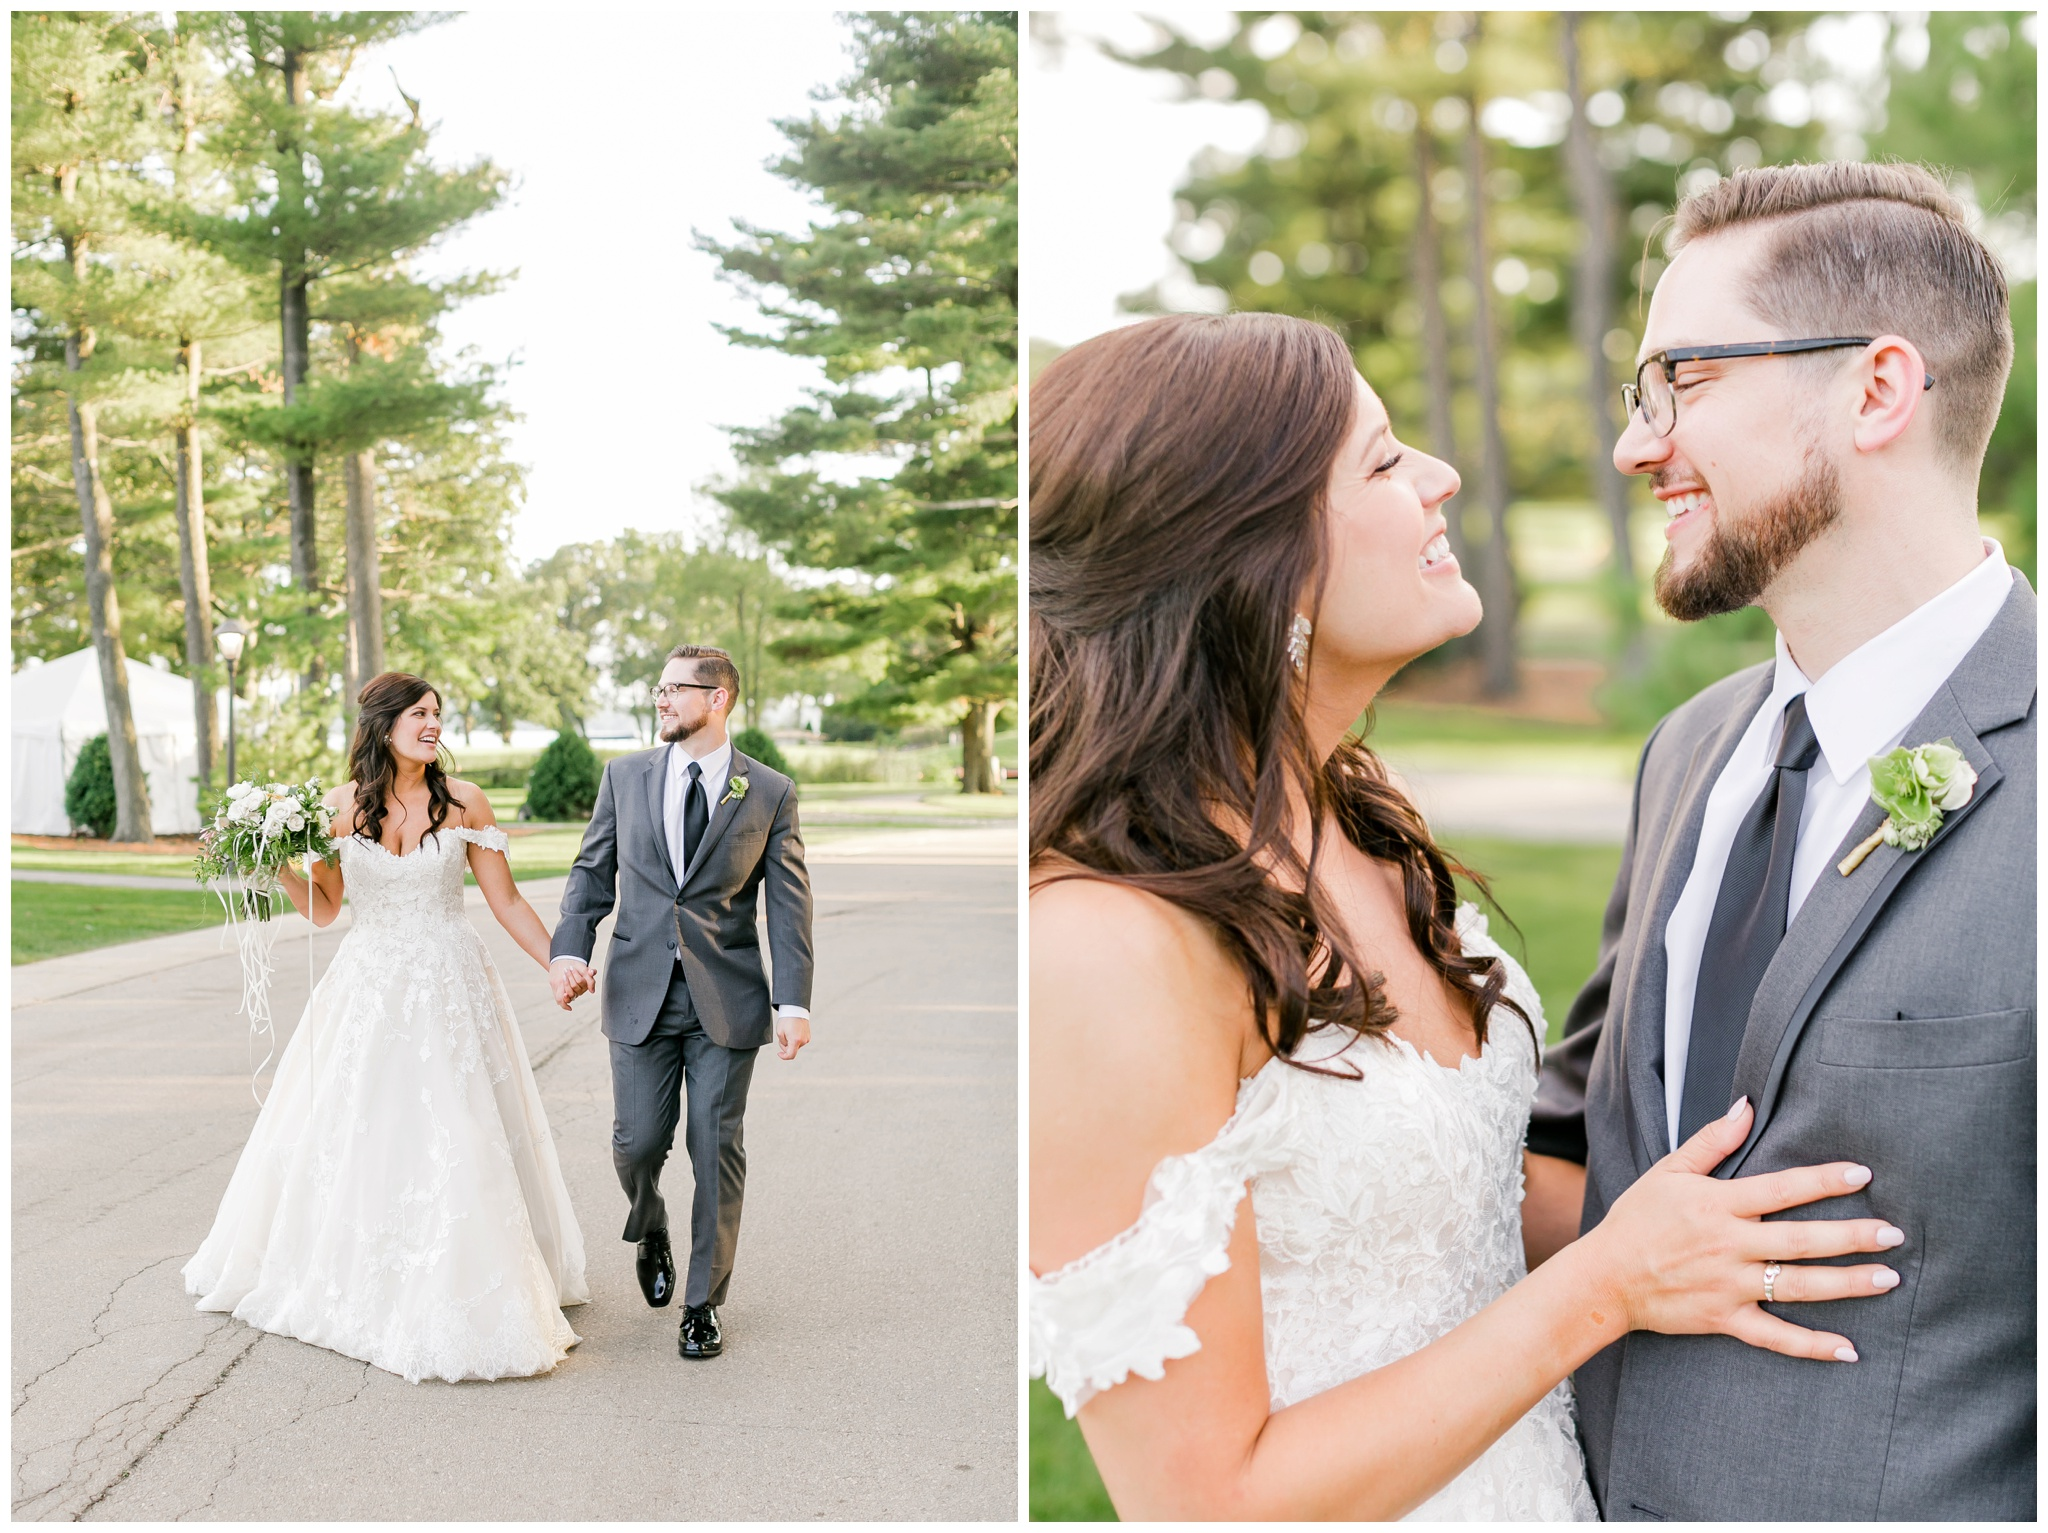 bishops_bay_country_club_wedding_middleton_wisconsin_caynay_photo_4734.jpg